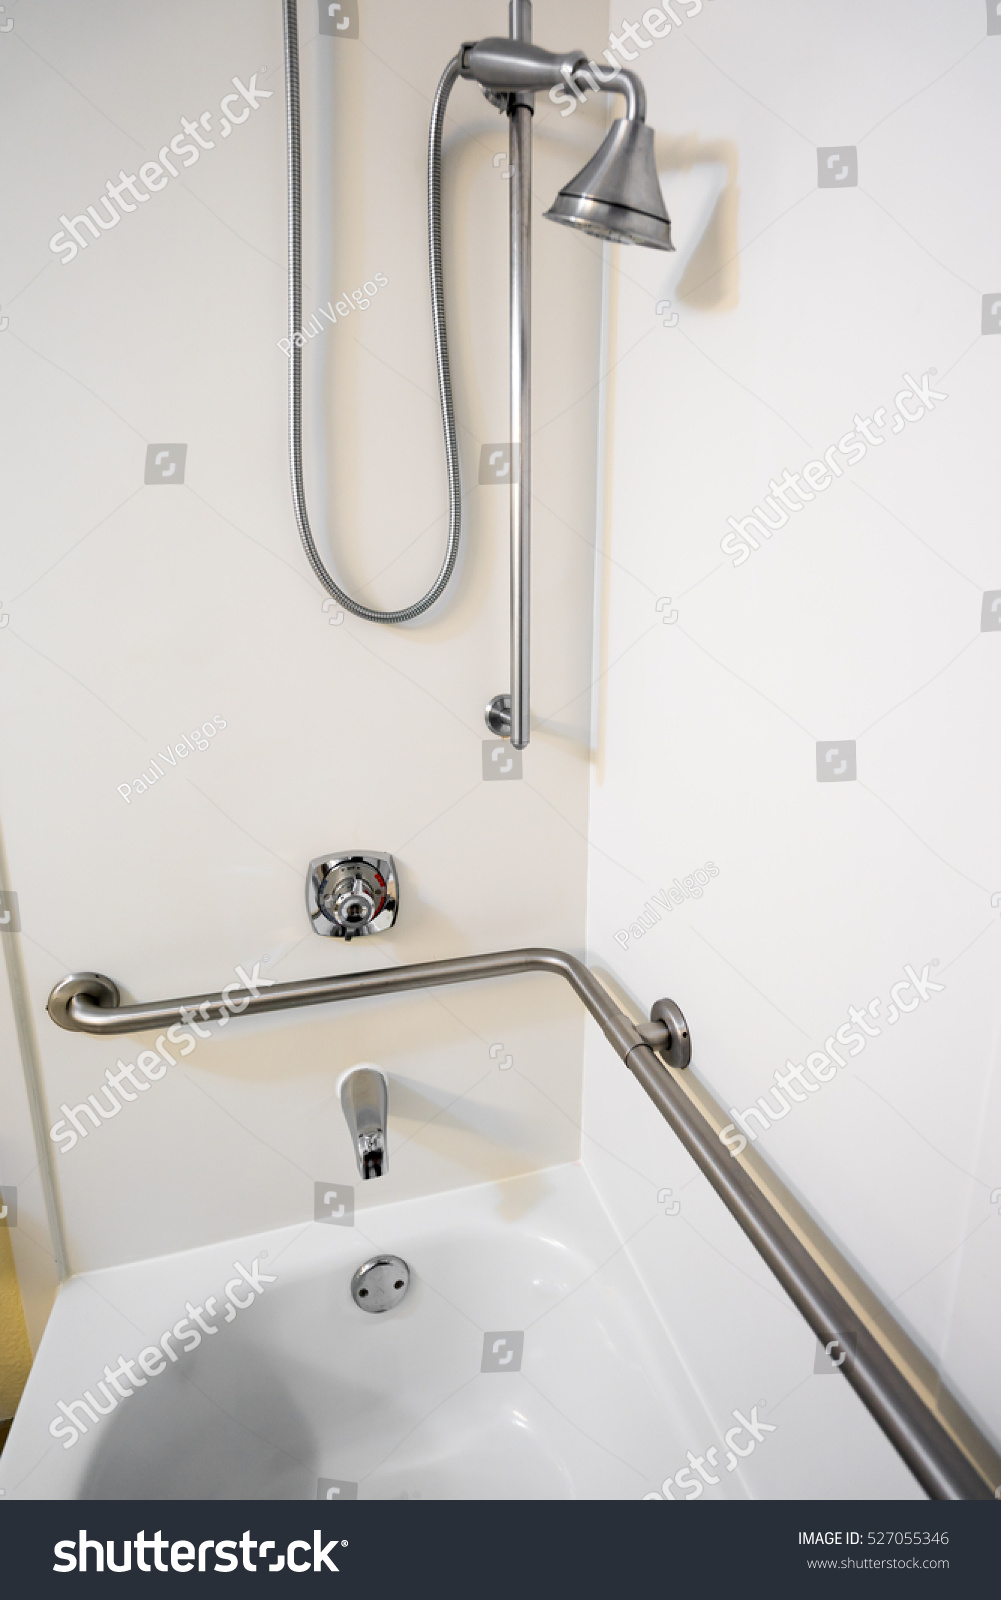 Disabled Access Bathtub Shower Grab Bar Stock Photo (Download Now ...